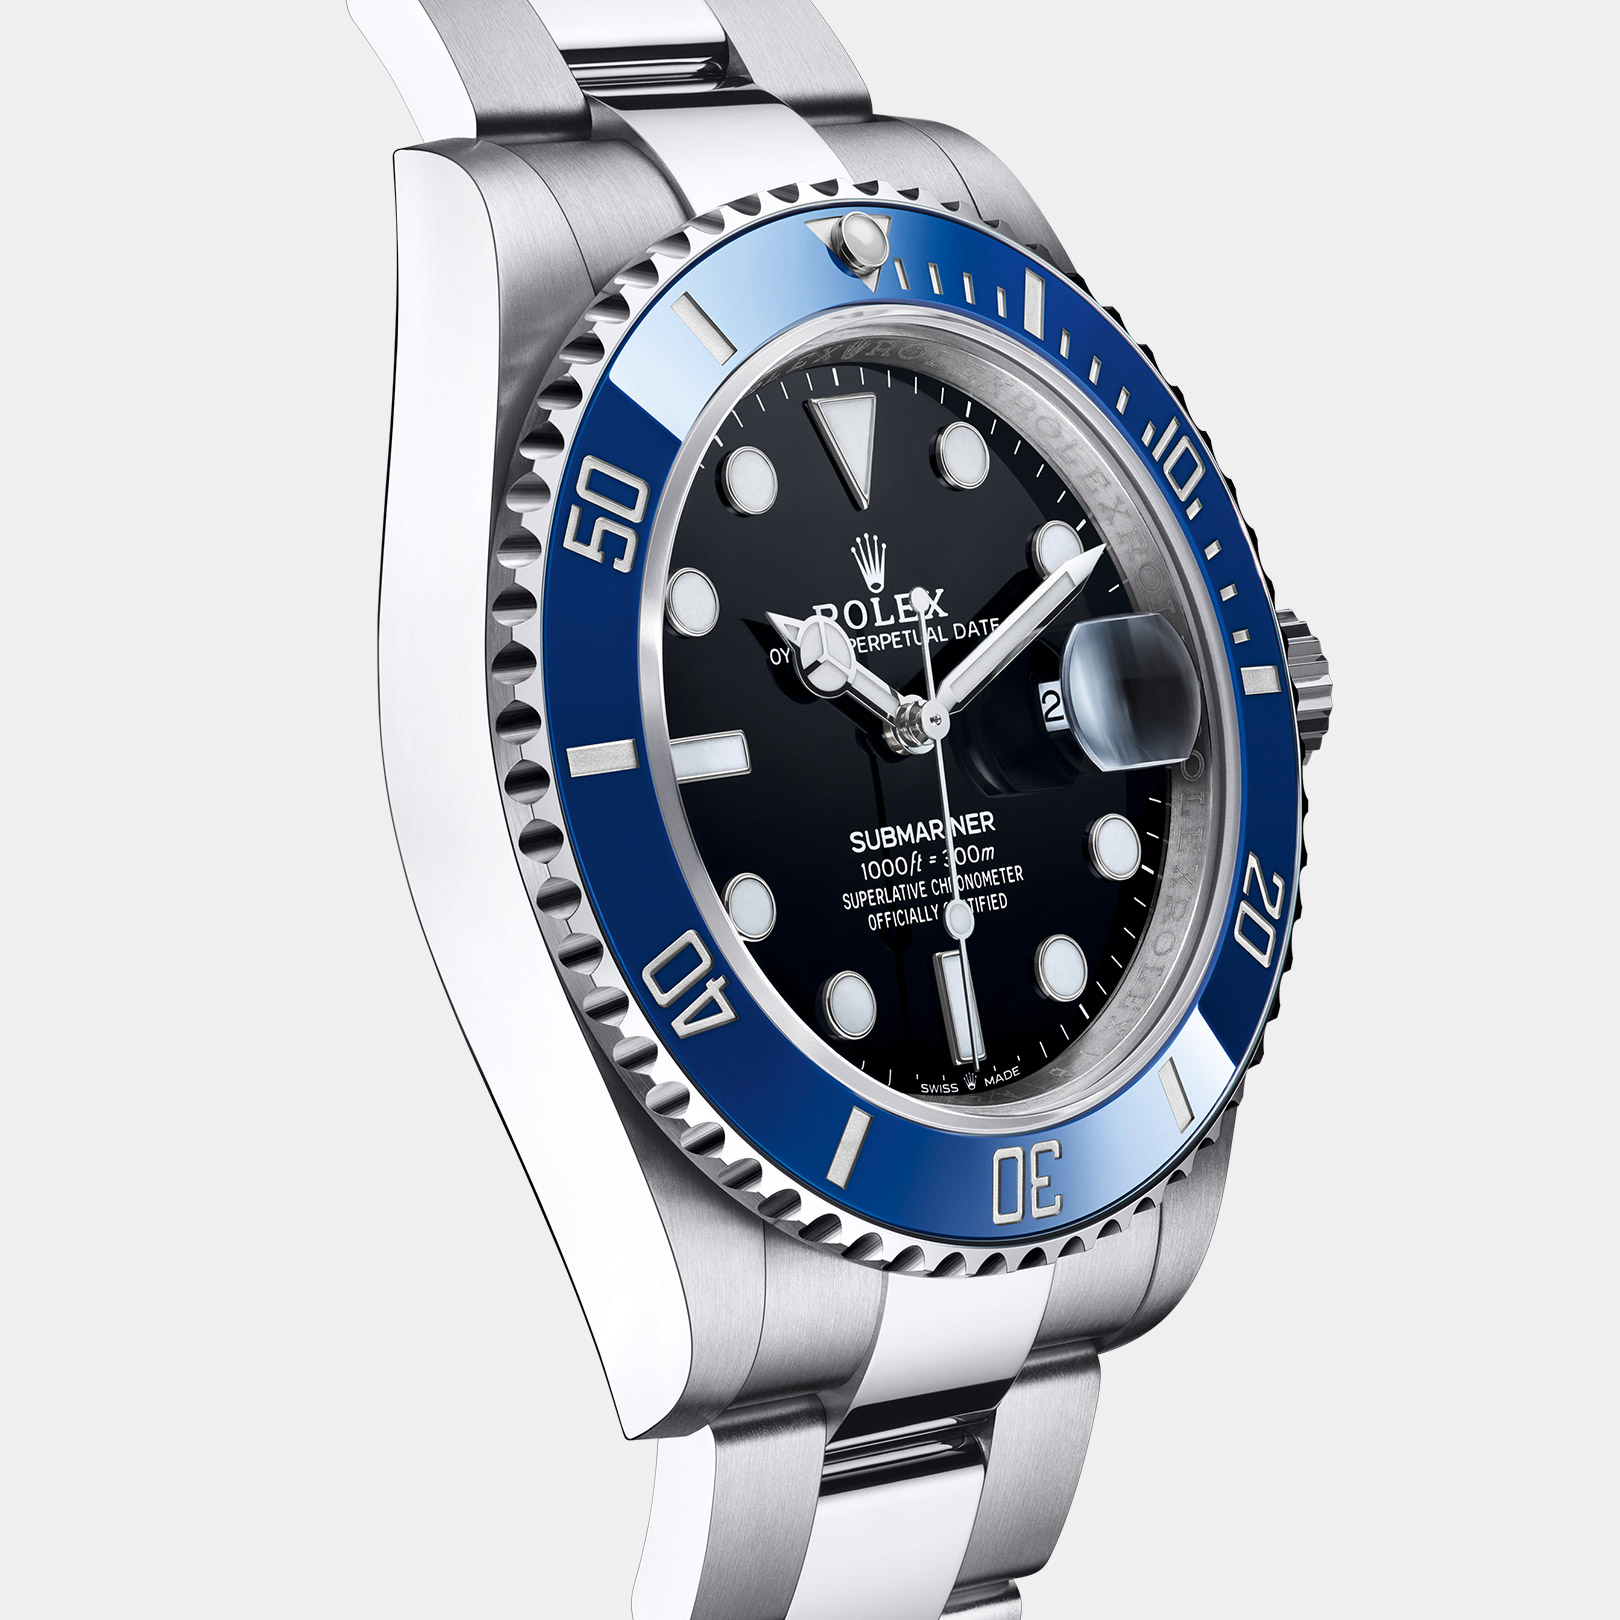 the new Rolex® Submariner with blue Cerachrom bezel and black dial